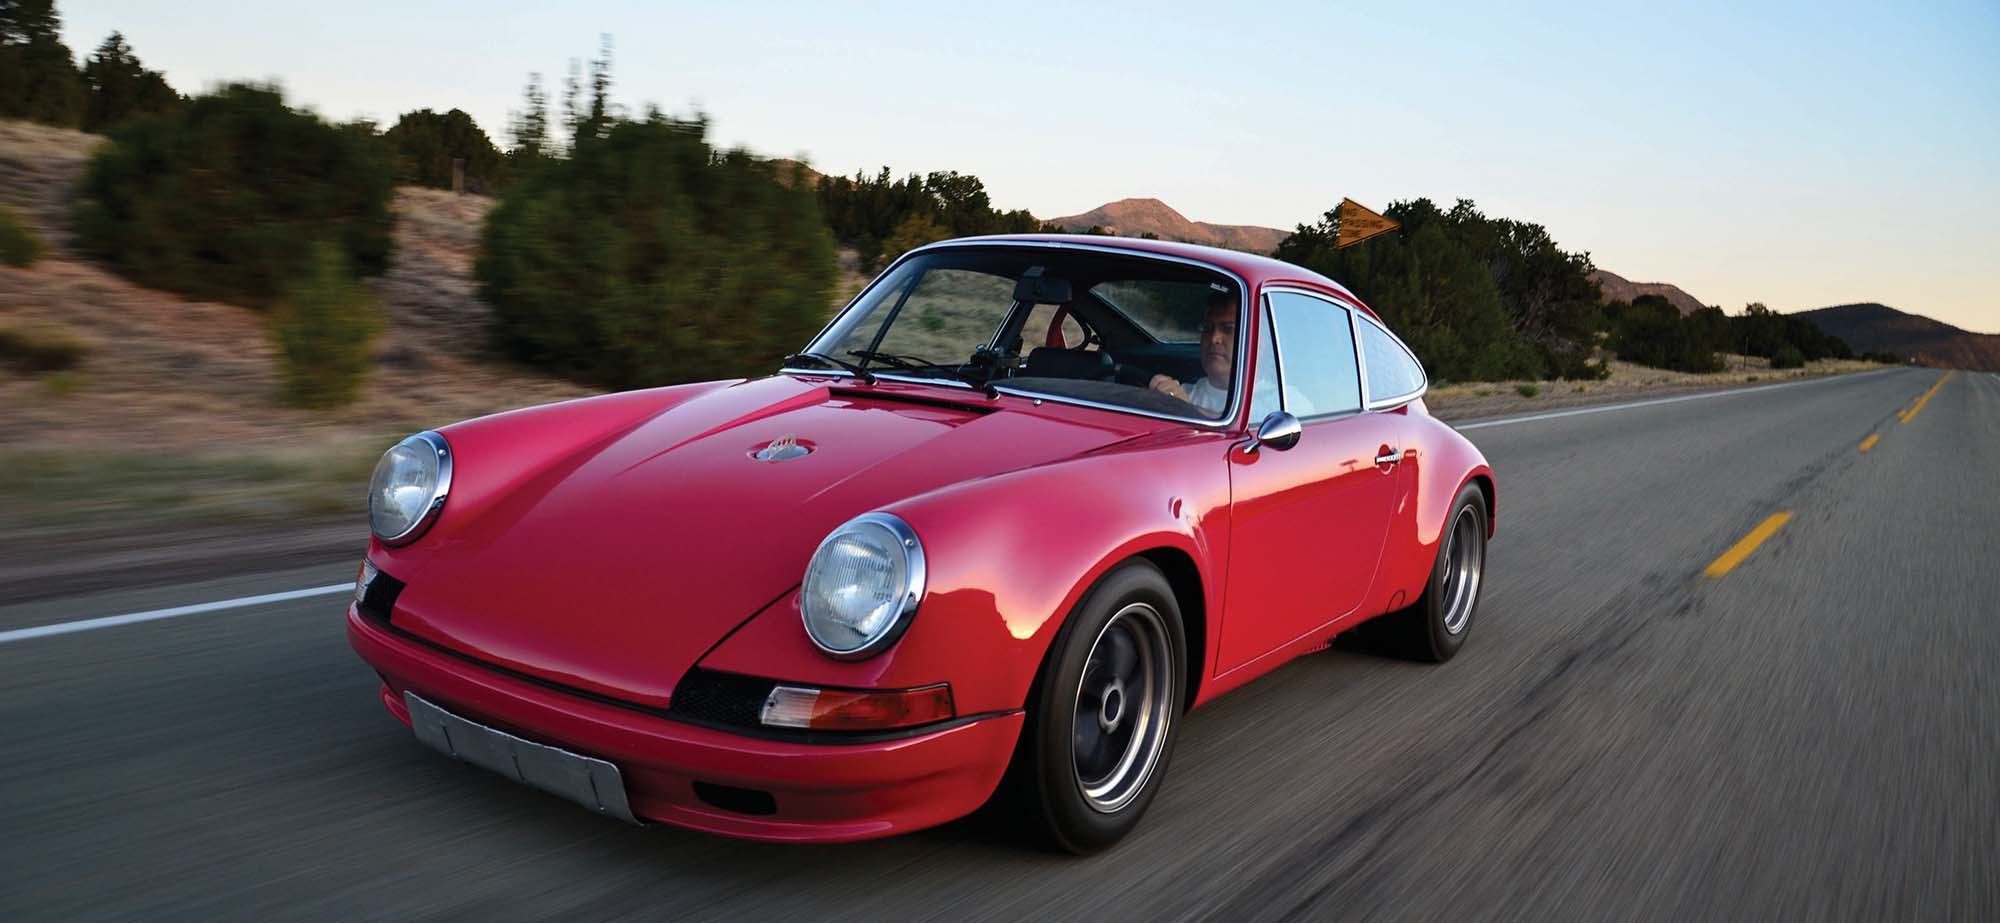 Tasty Fraise An Old,School Porsche 911 In Pink